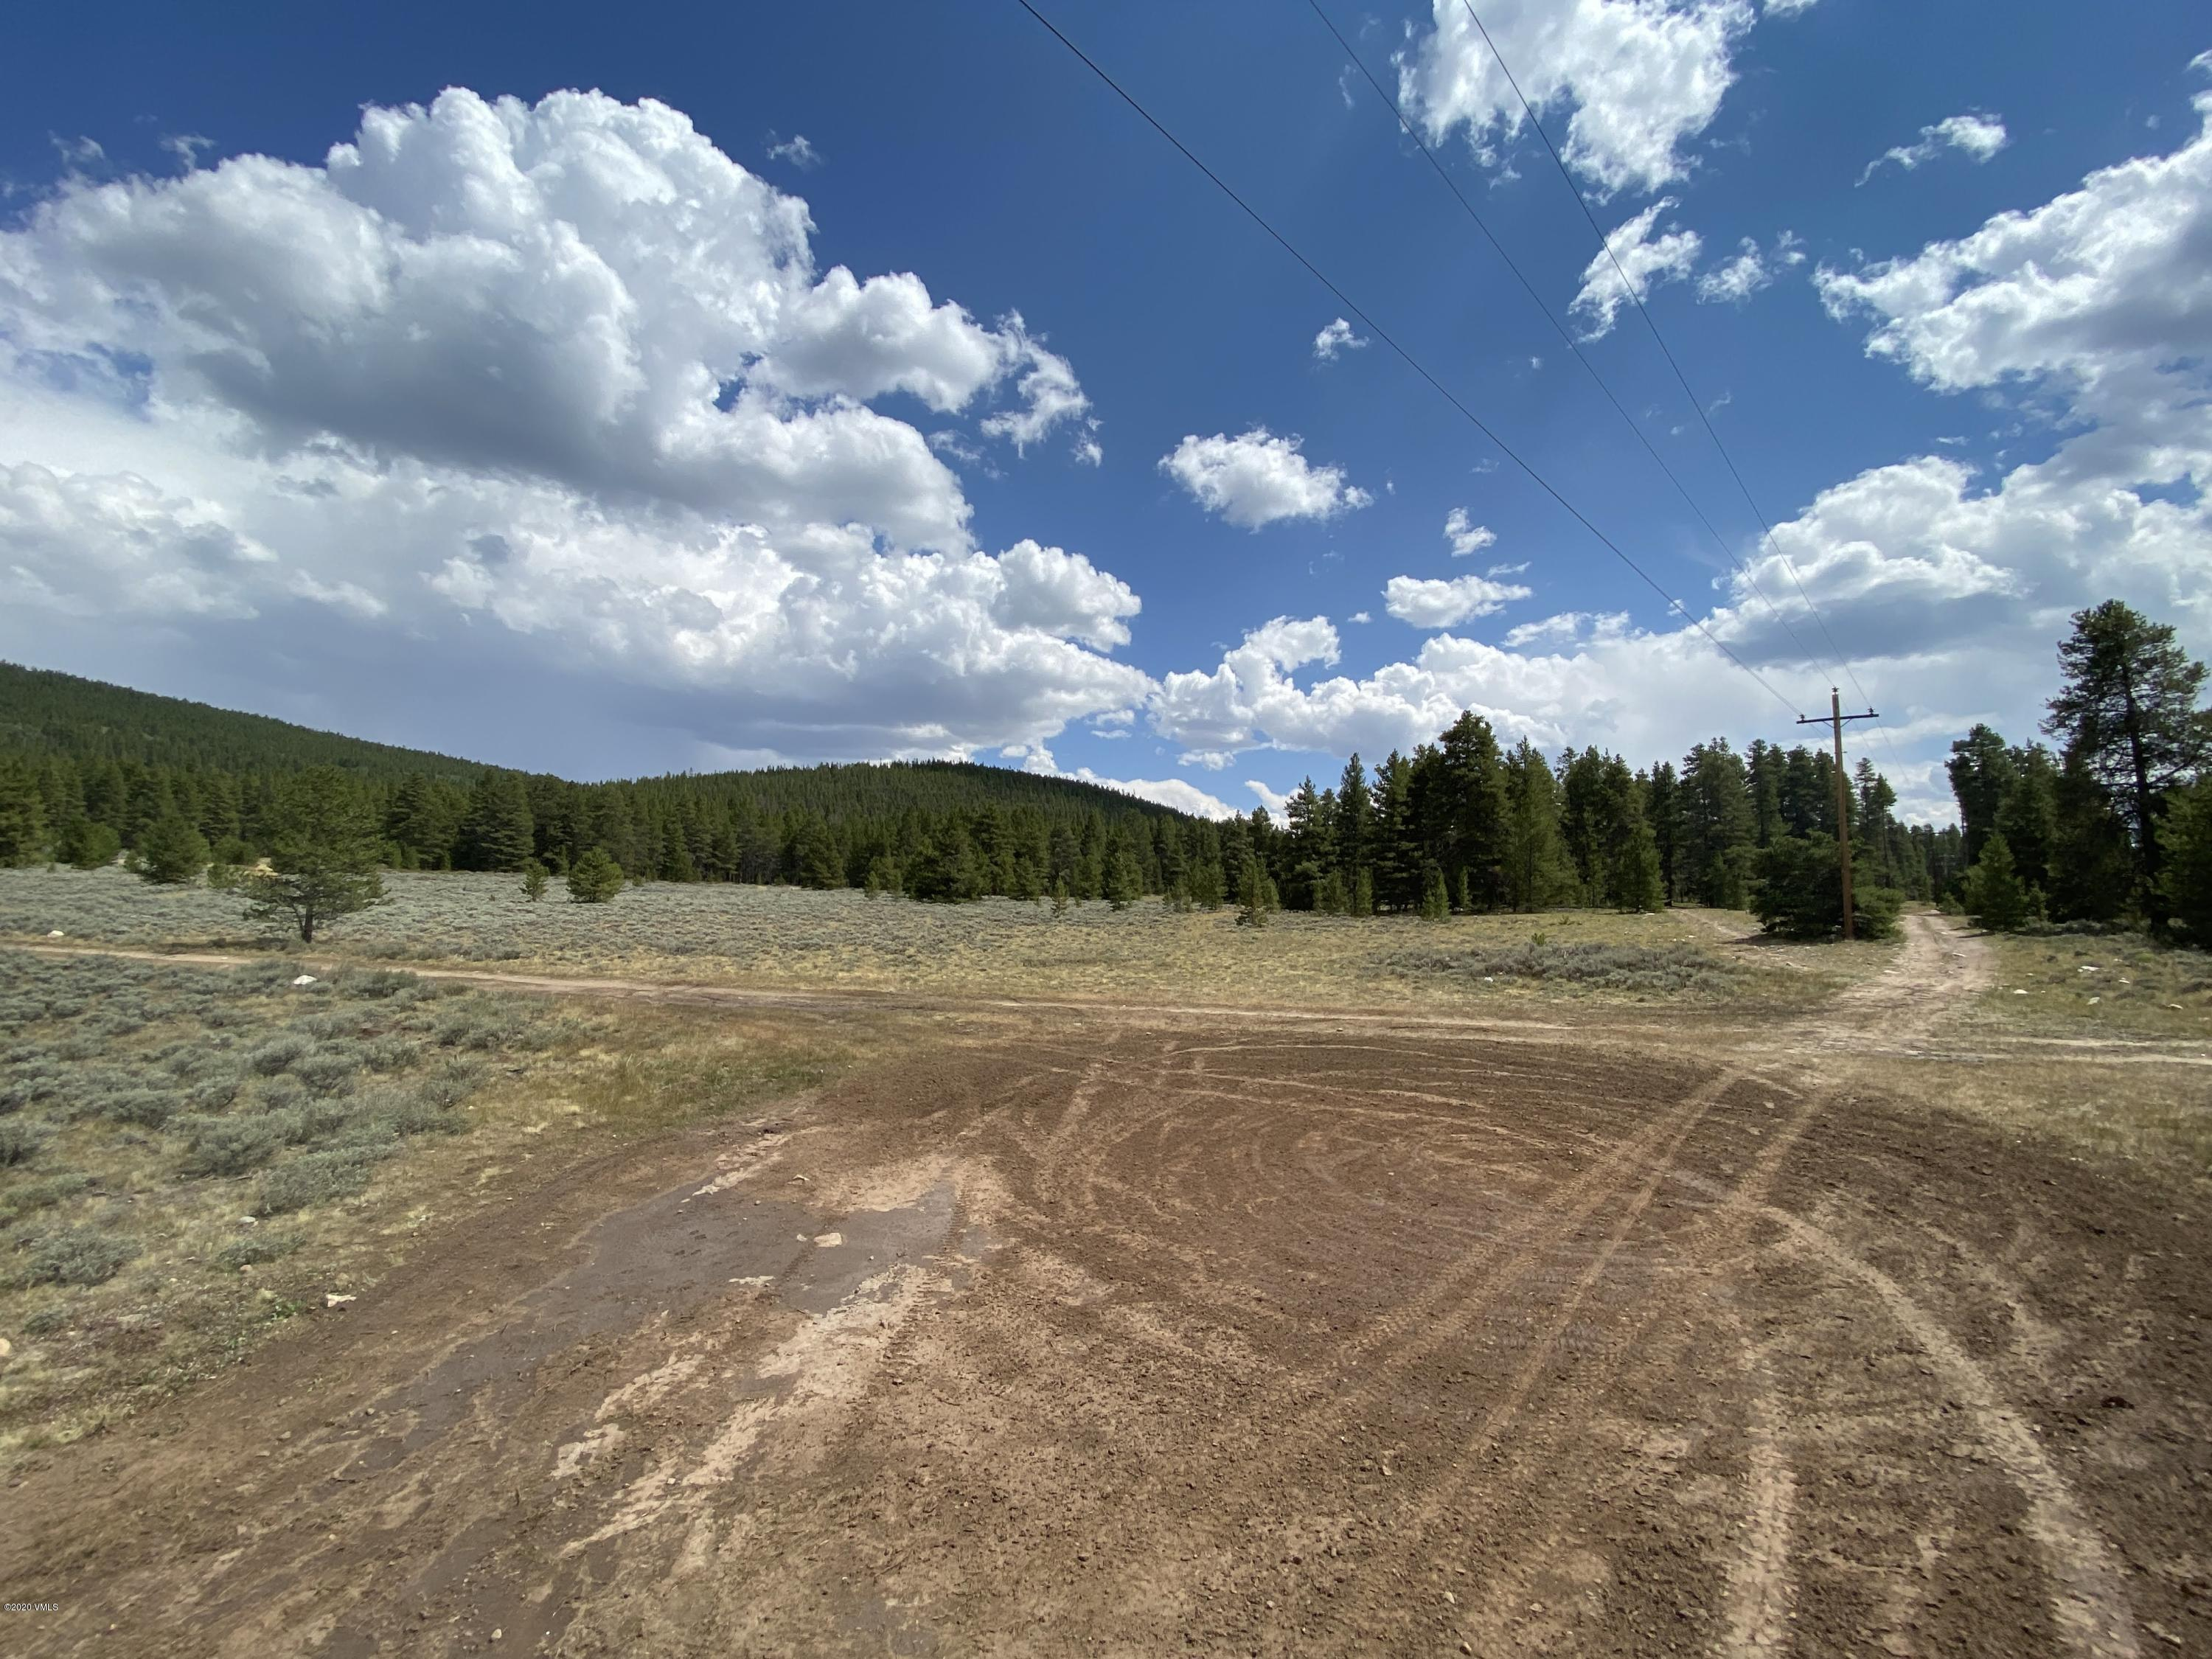 1 TBD Highway 24, Leadville, CO 80461 Property Photo - Leadville, CO real estate listing